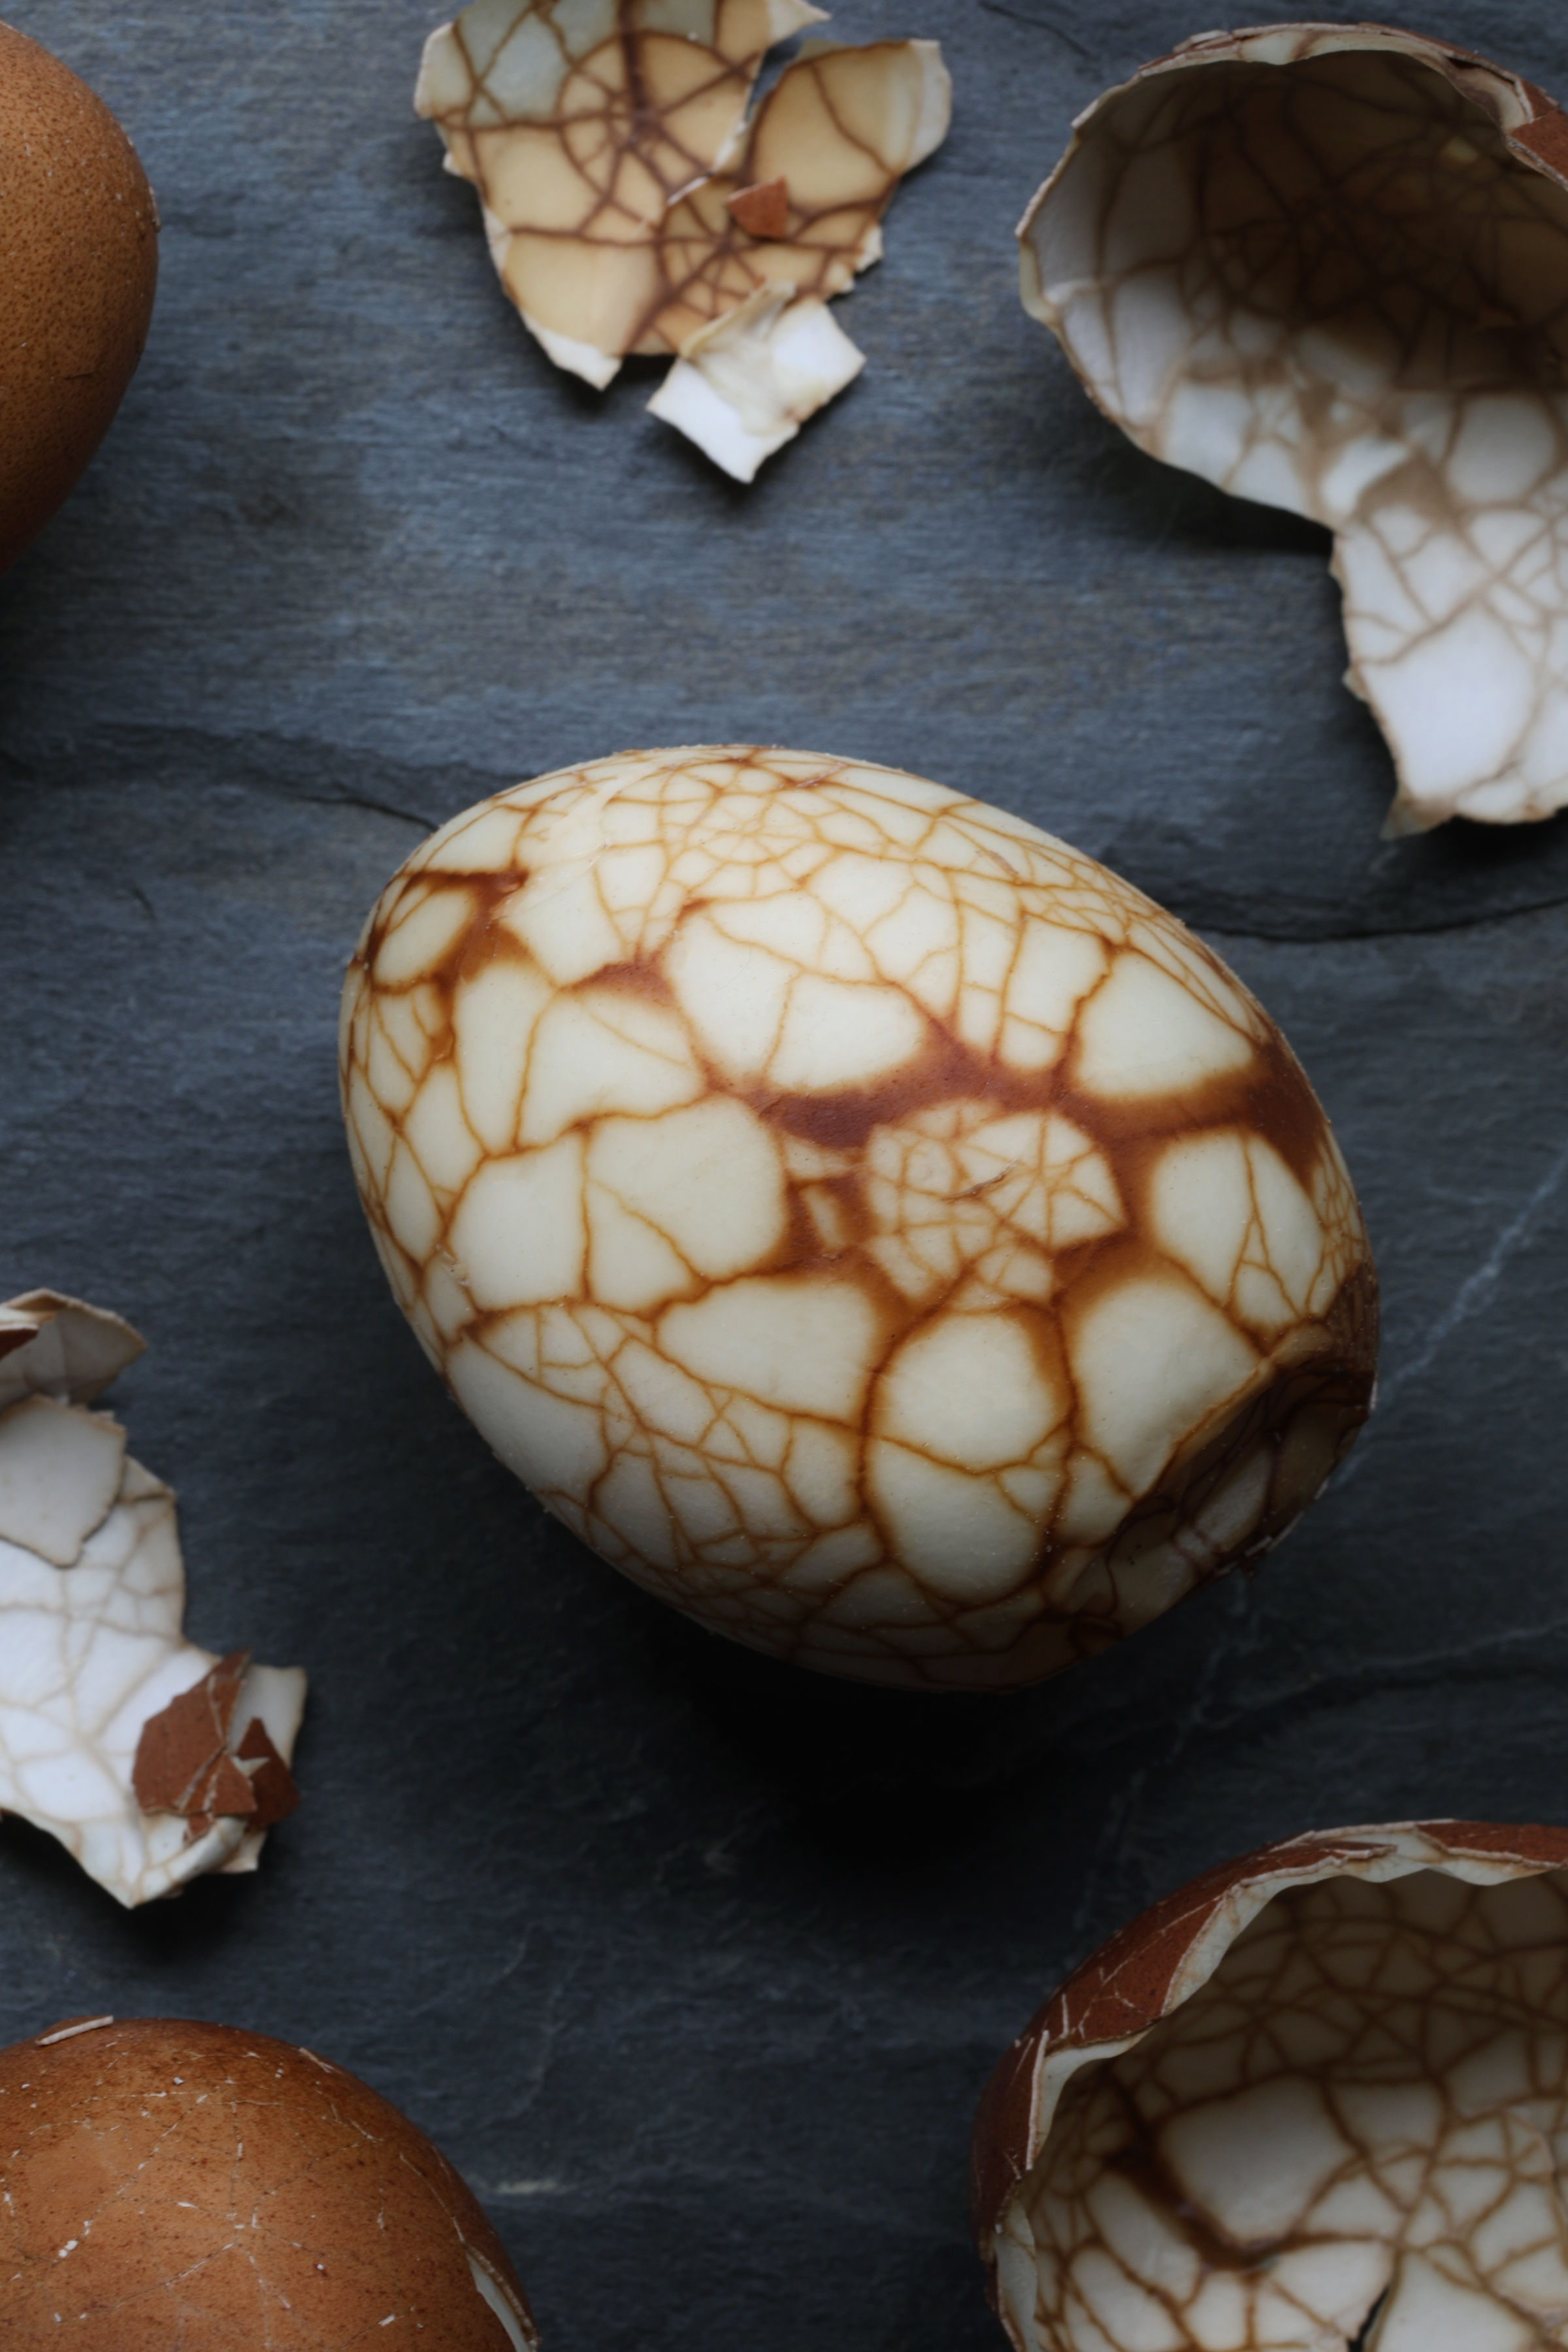 Close up photo of marbled tea egg showing brown lines along cracked area